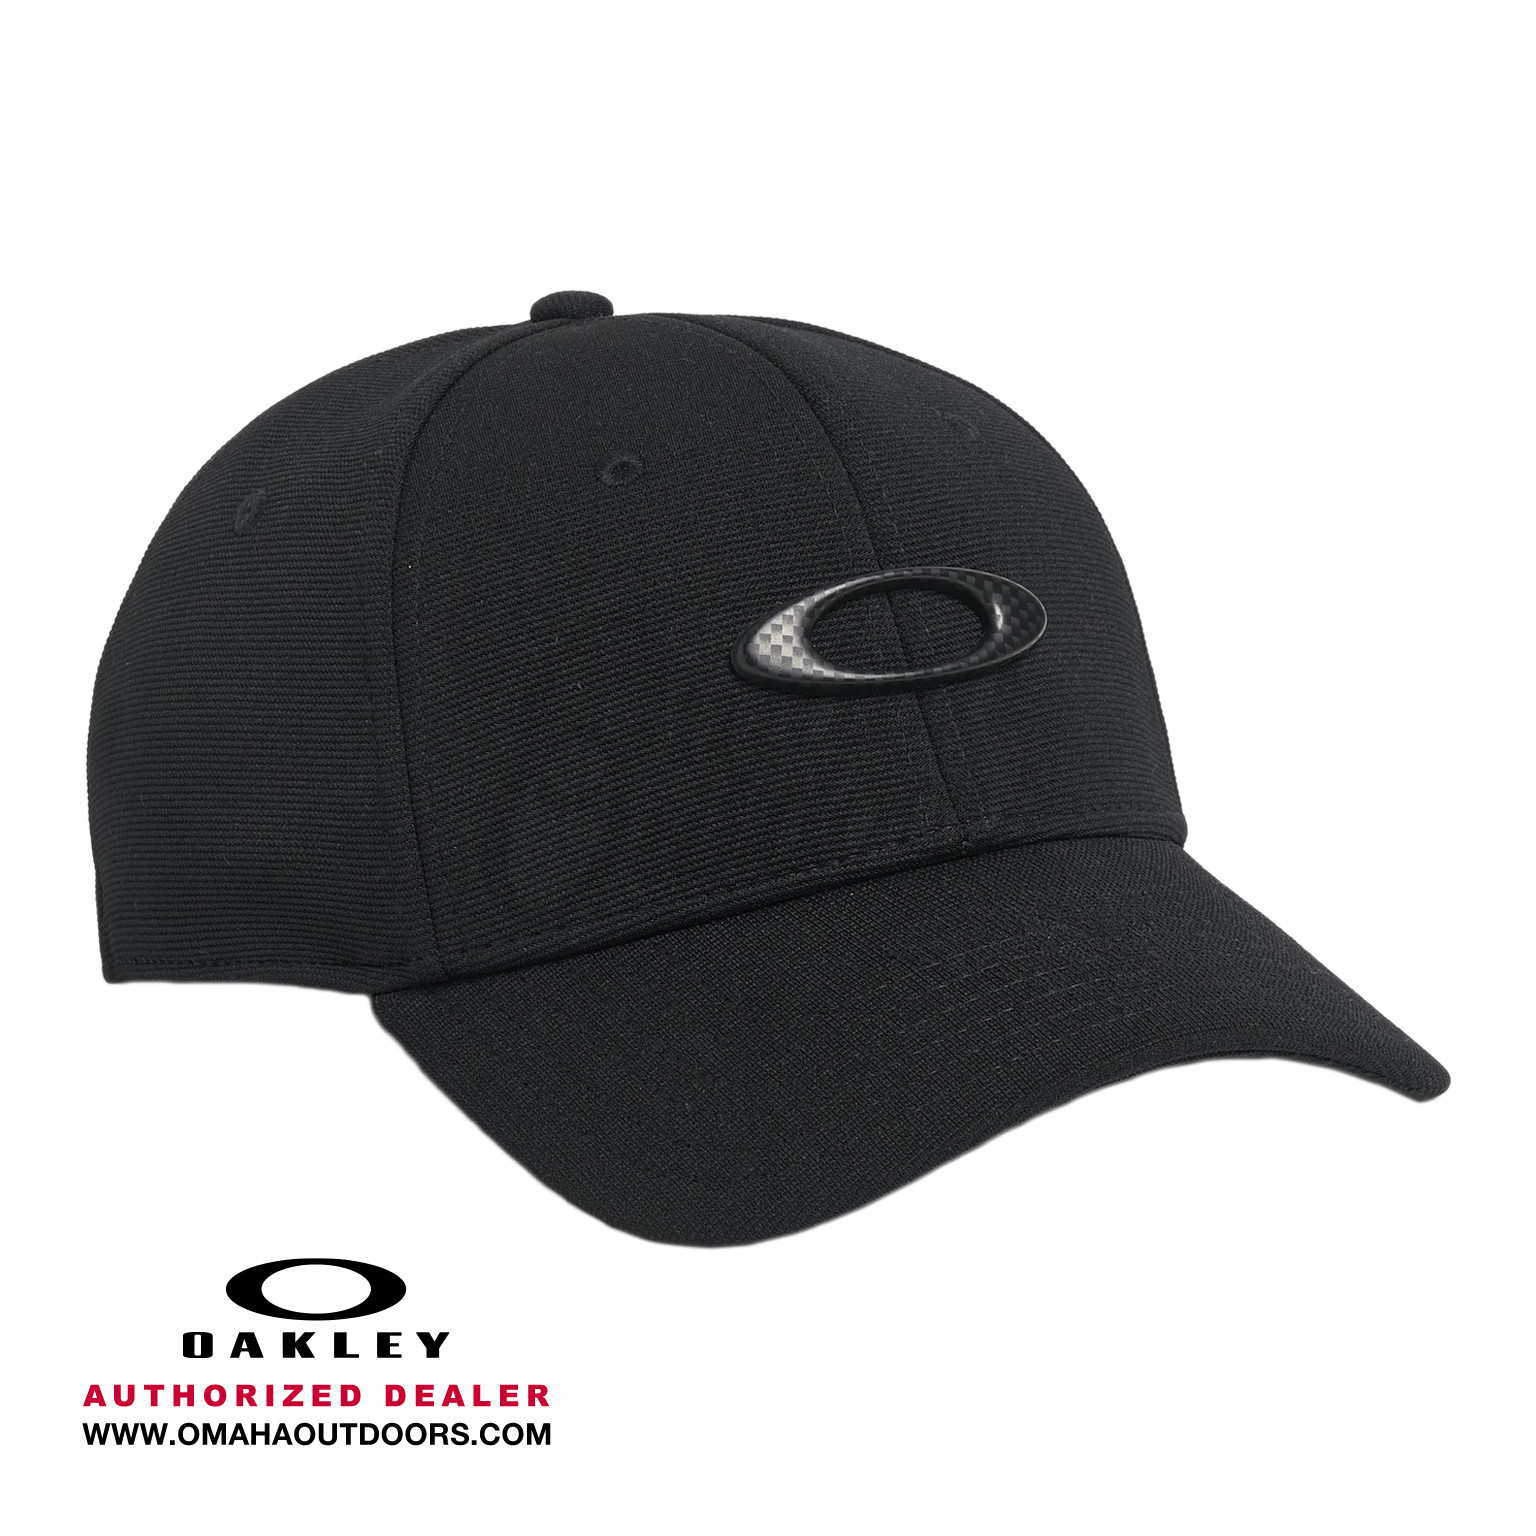 Oakley Tincan Stretch Fabric Hat 911545 - Omaha Outdoors